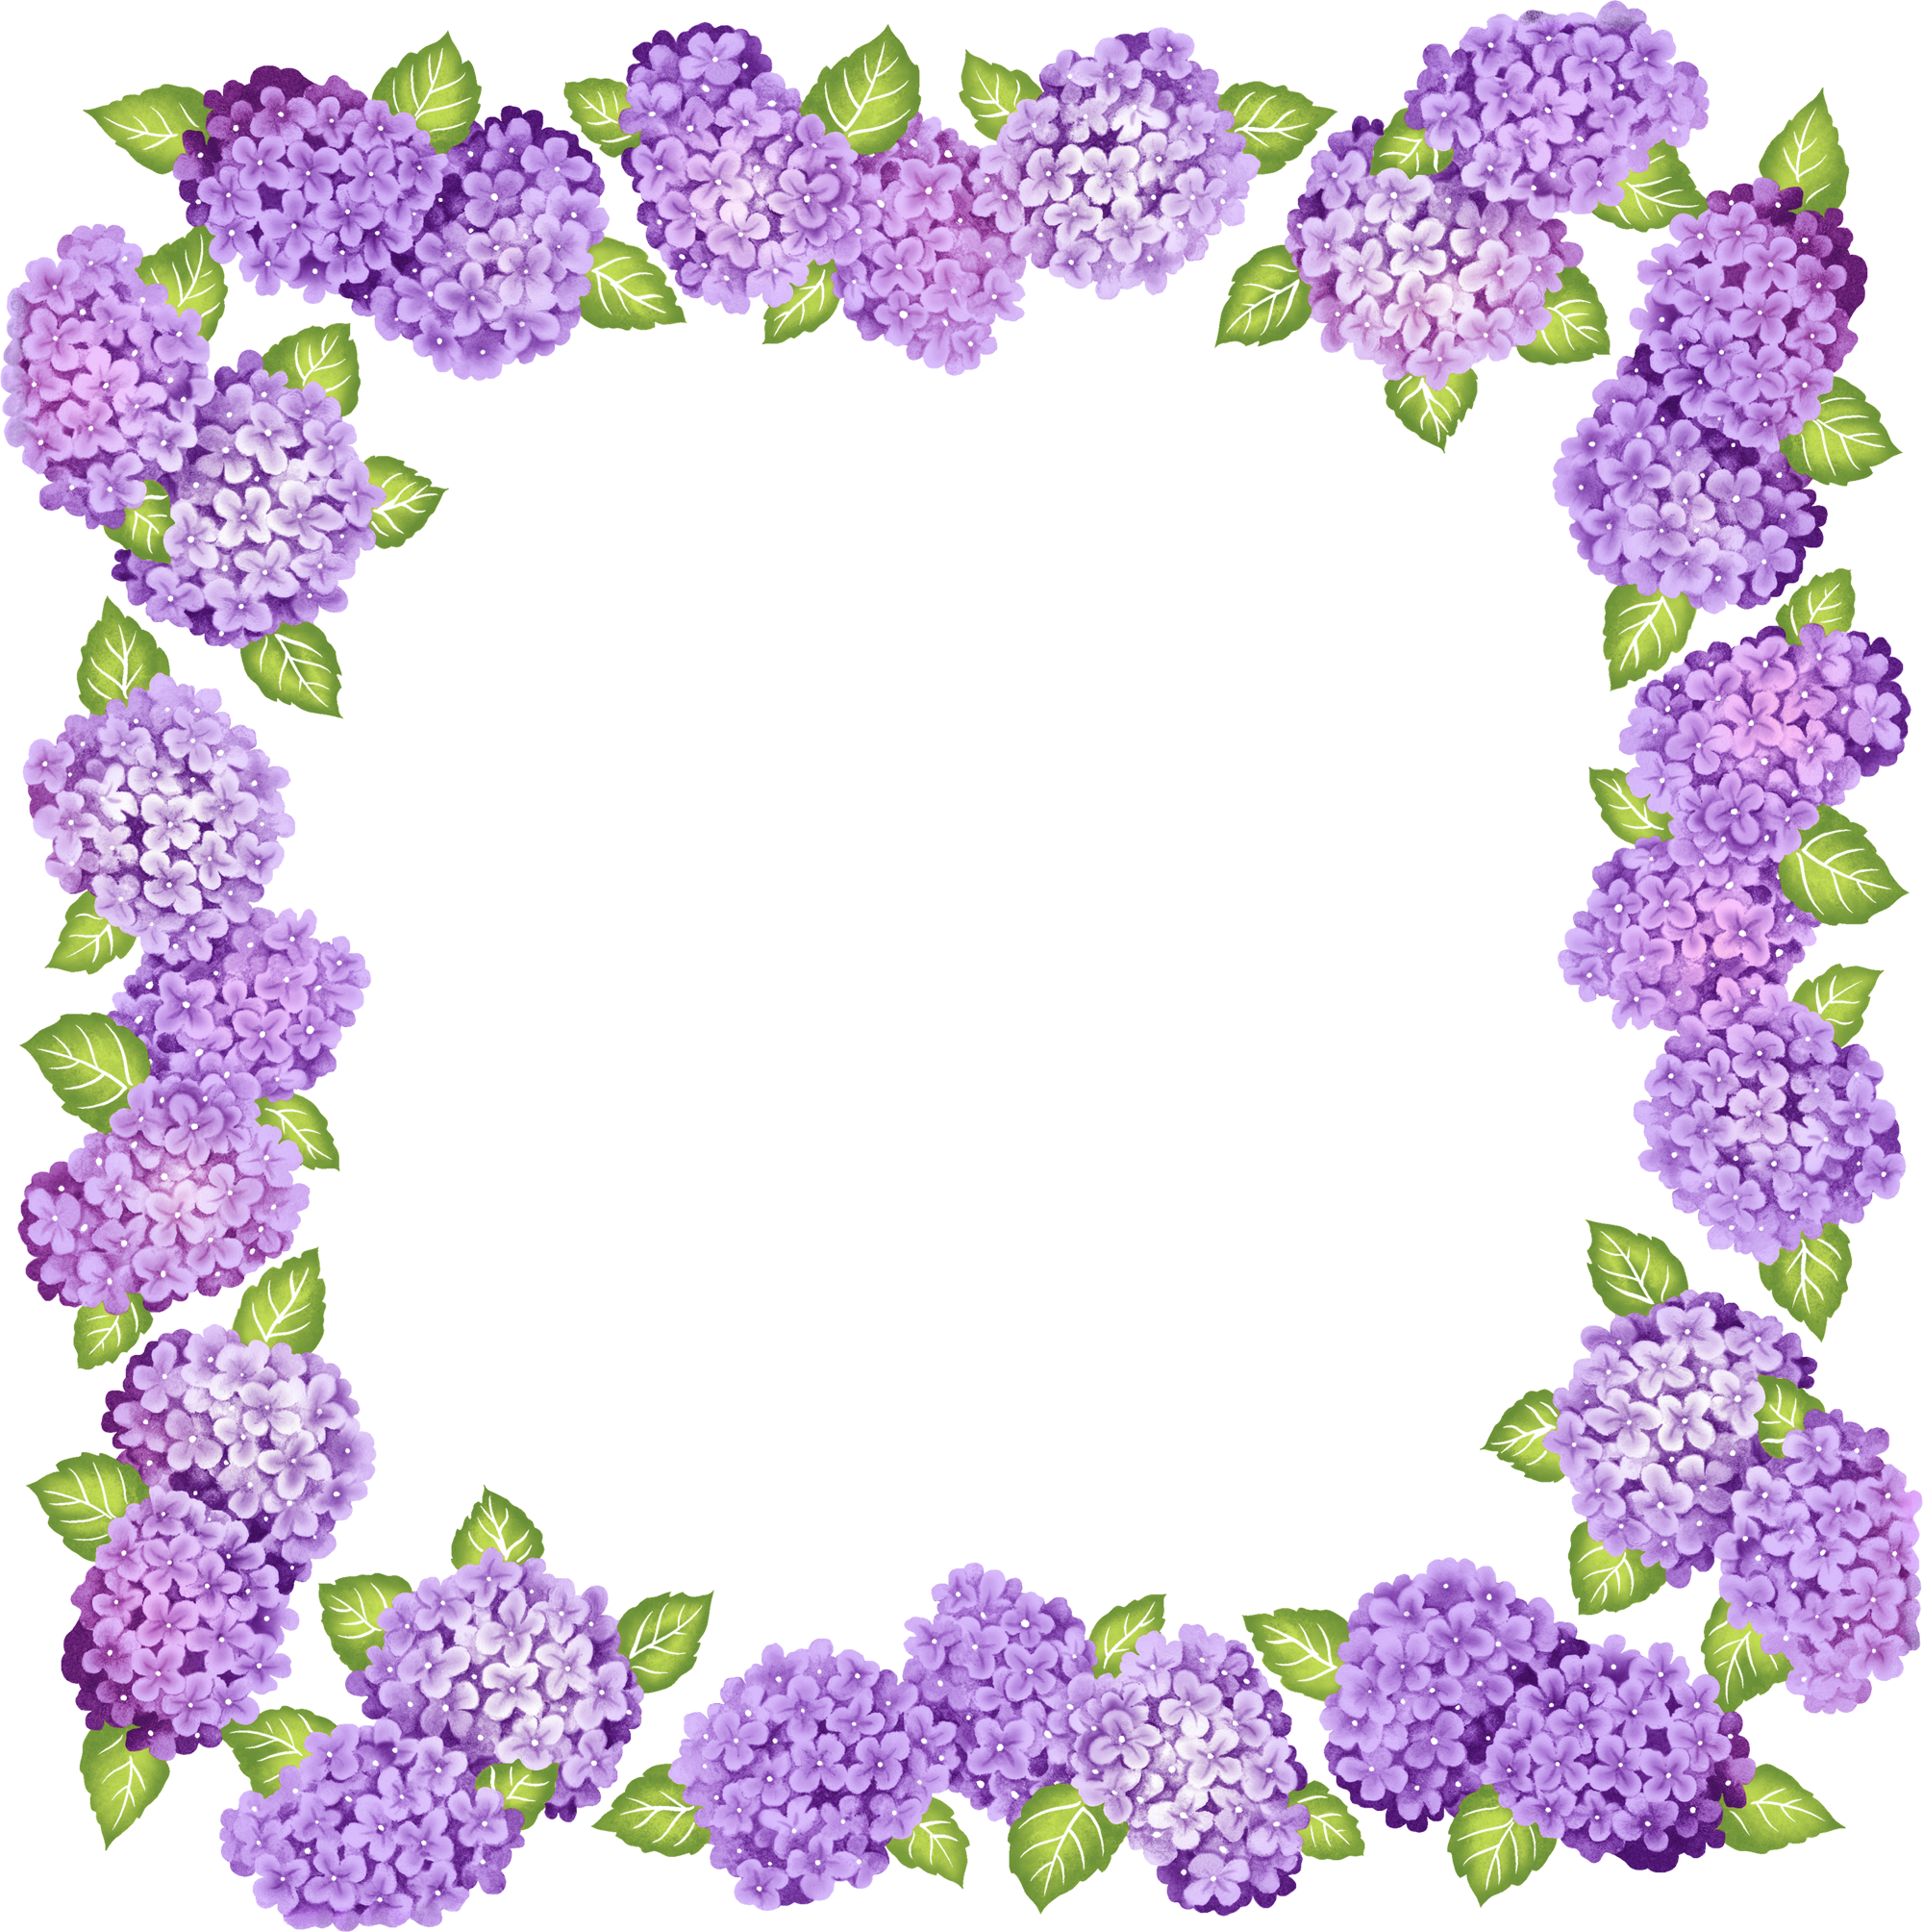 Transparent Purple Frame Purple Frame Polyvore Edits